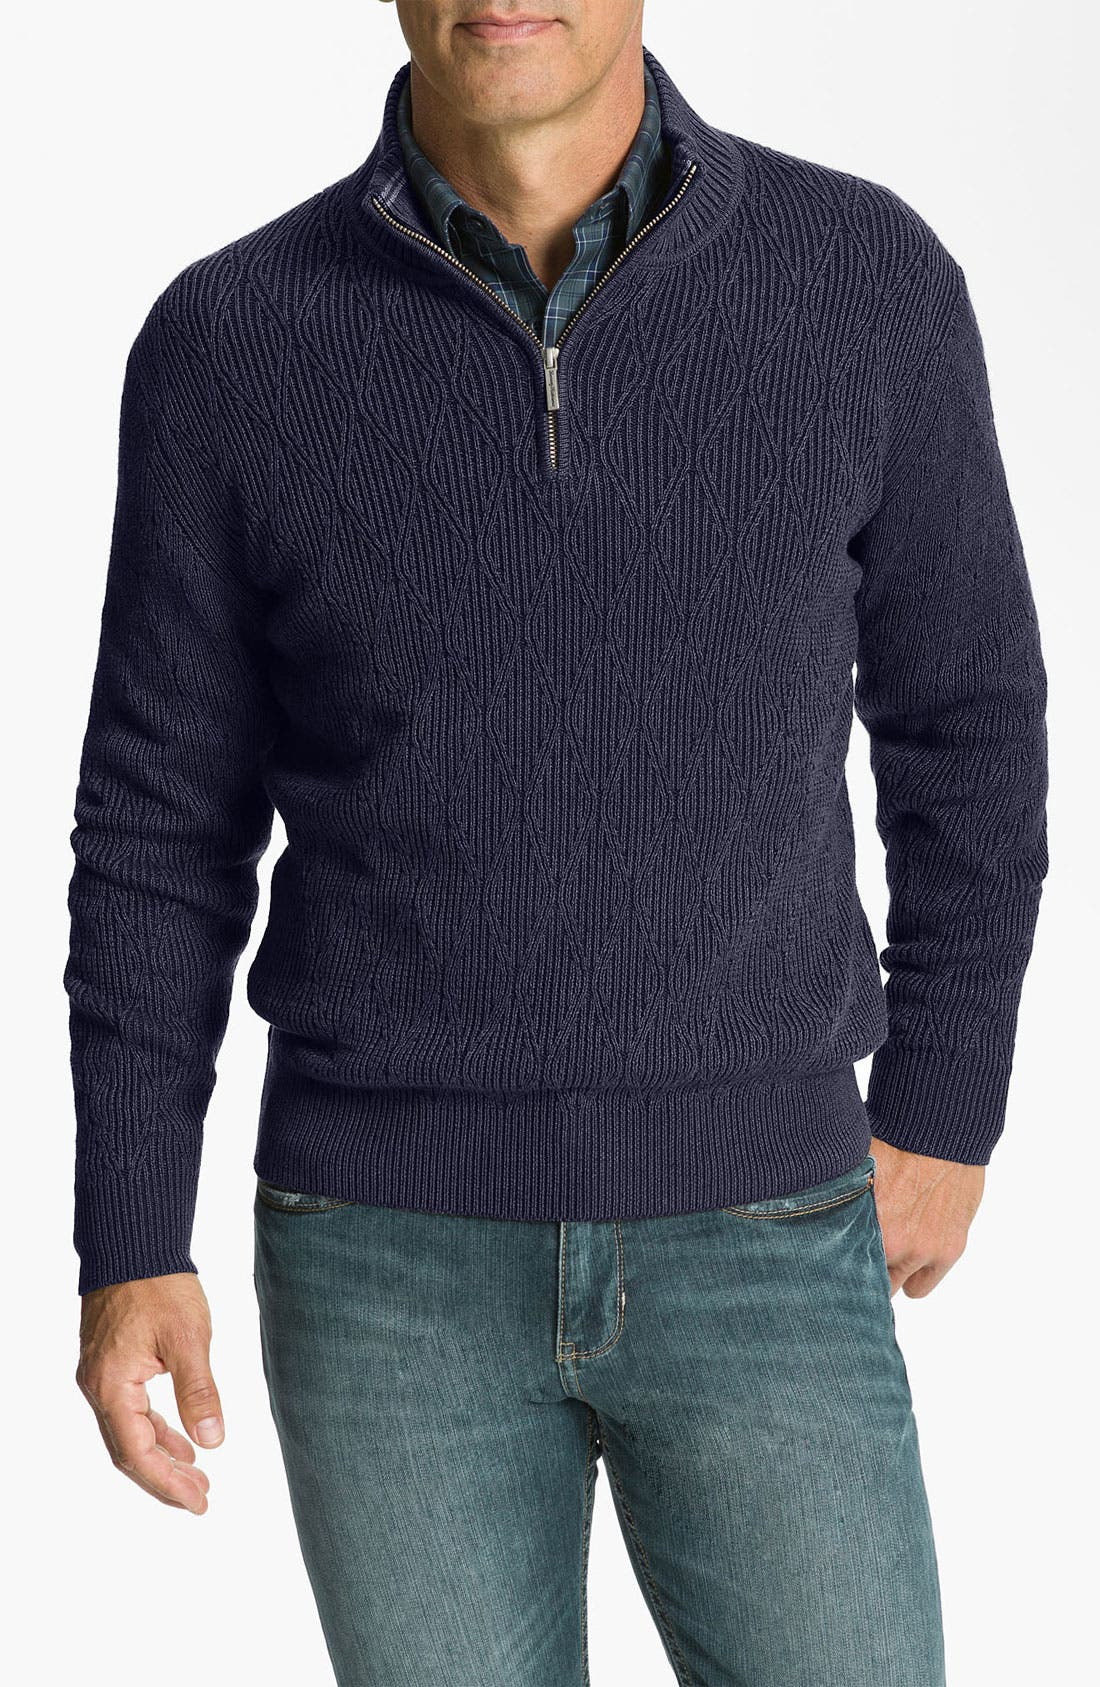 Main Image - Tommy Bahama 'Coastal Fairway' Half Zip Sweater